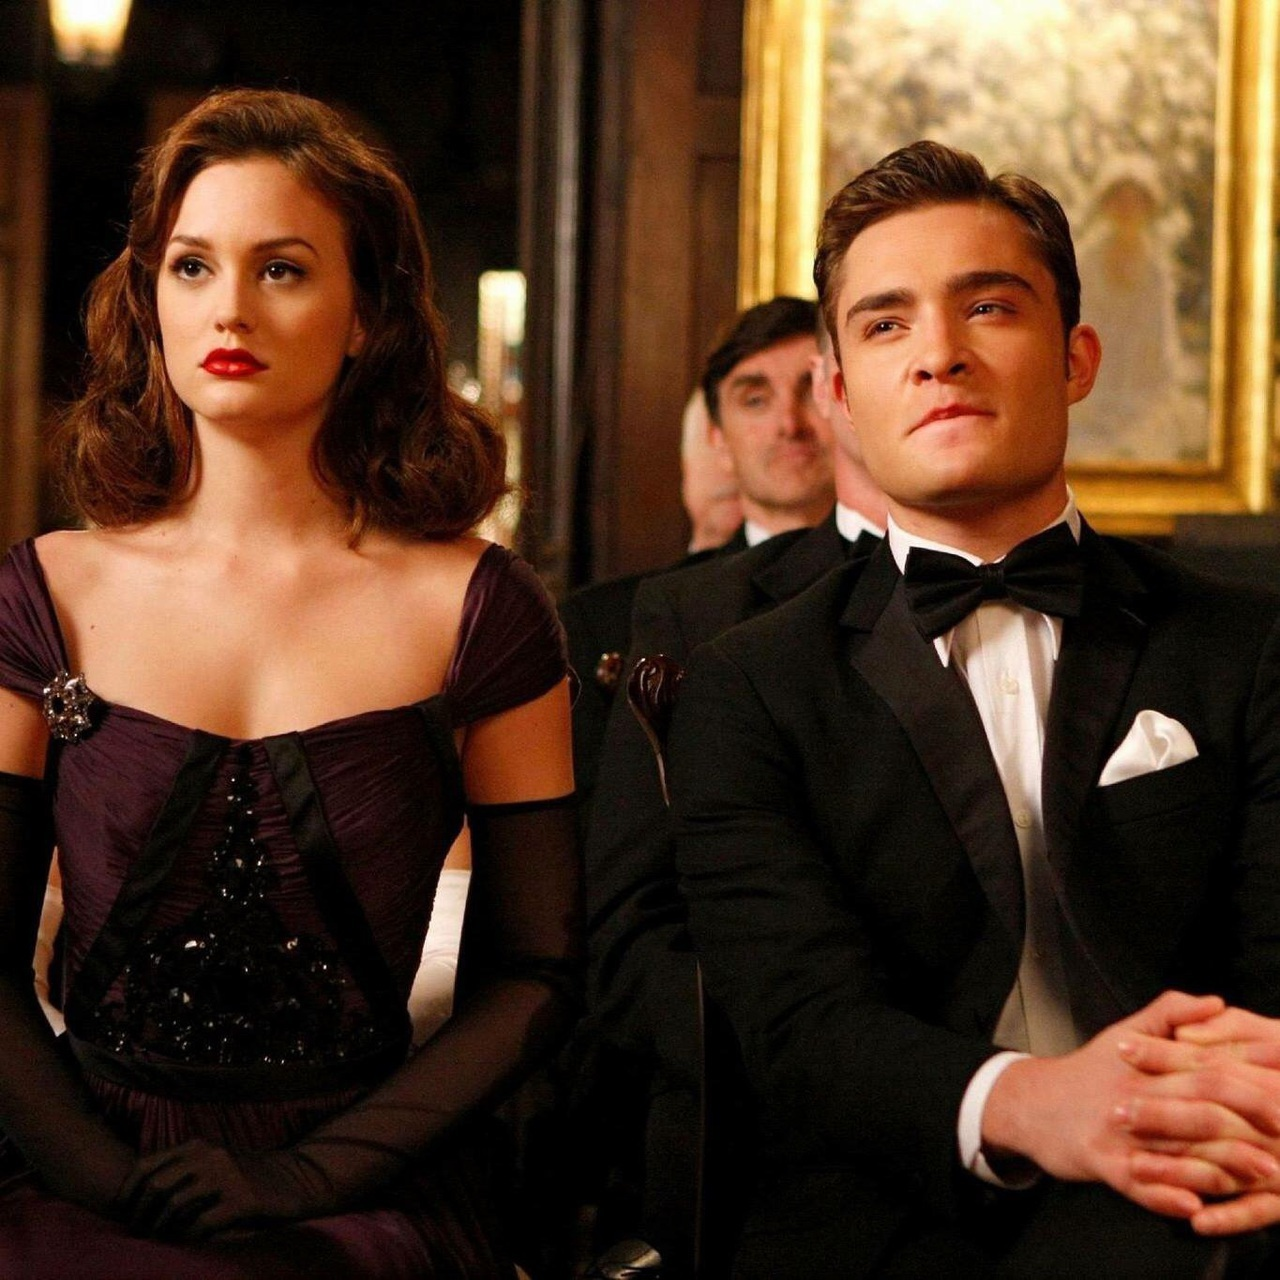 blair, blair and chuck, blair waldorf, chuck, chuck bass